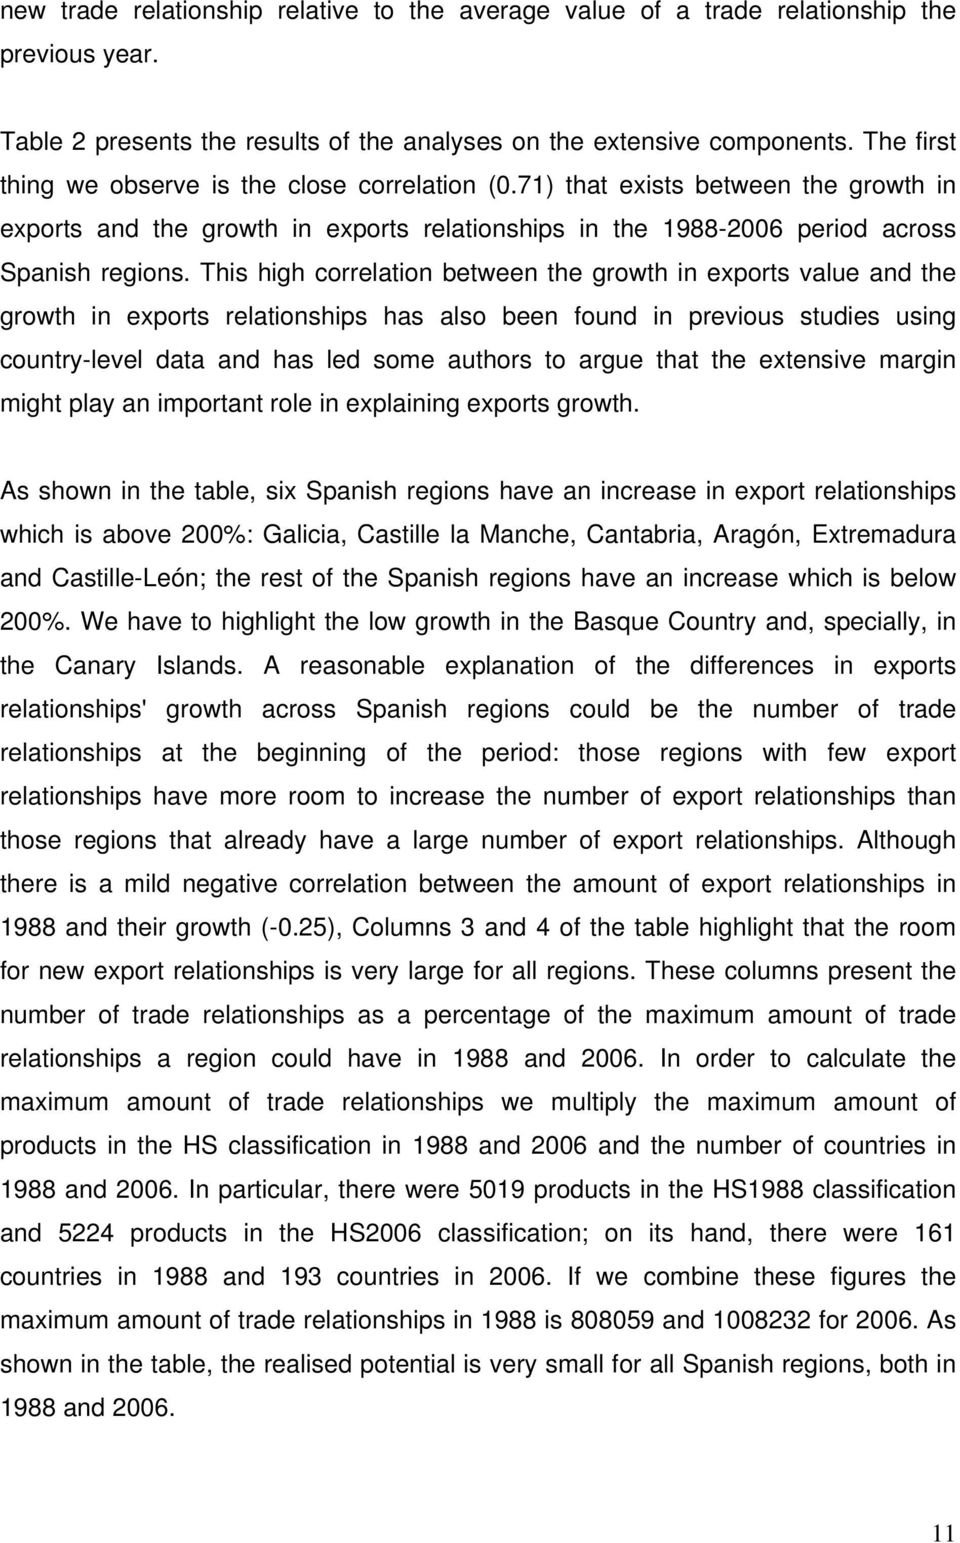 This high correlation between the growth in exports value and the growth in exports relationships has also been found in previous studies using country-level data and has led some authors to argue